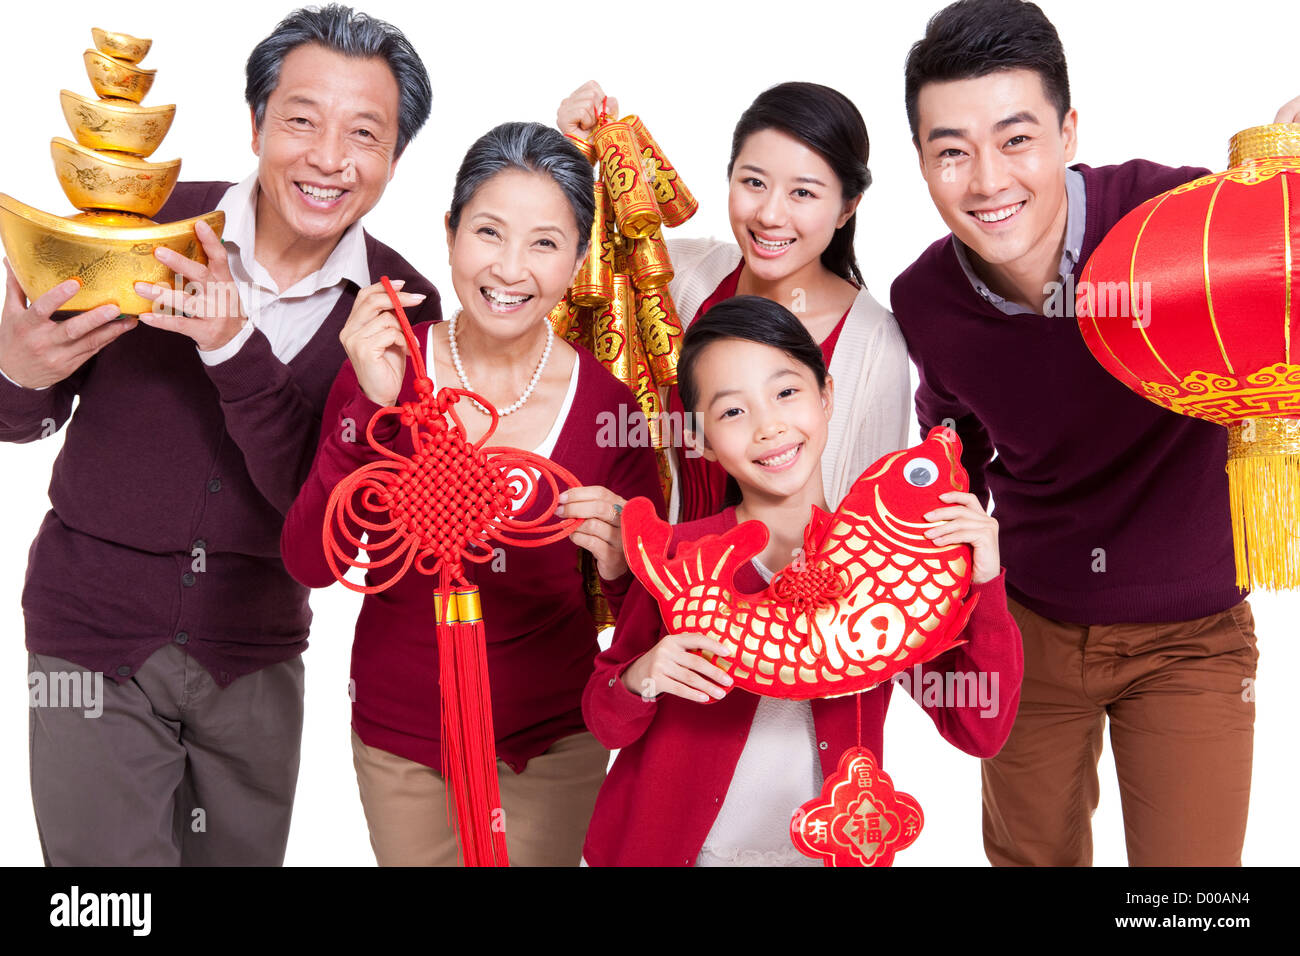 A diverse Chinese New Year celebration - Star2.com